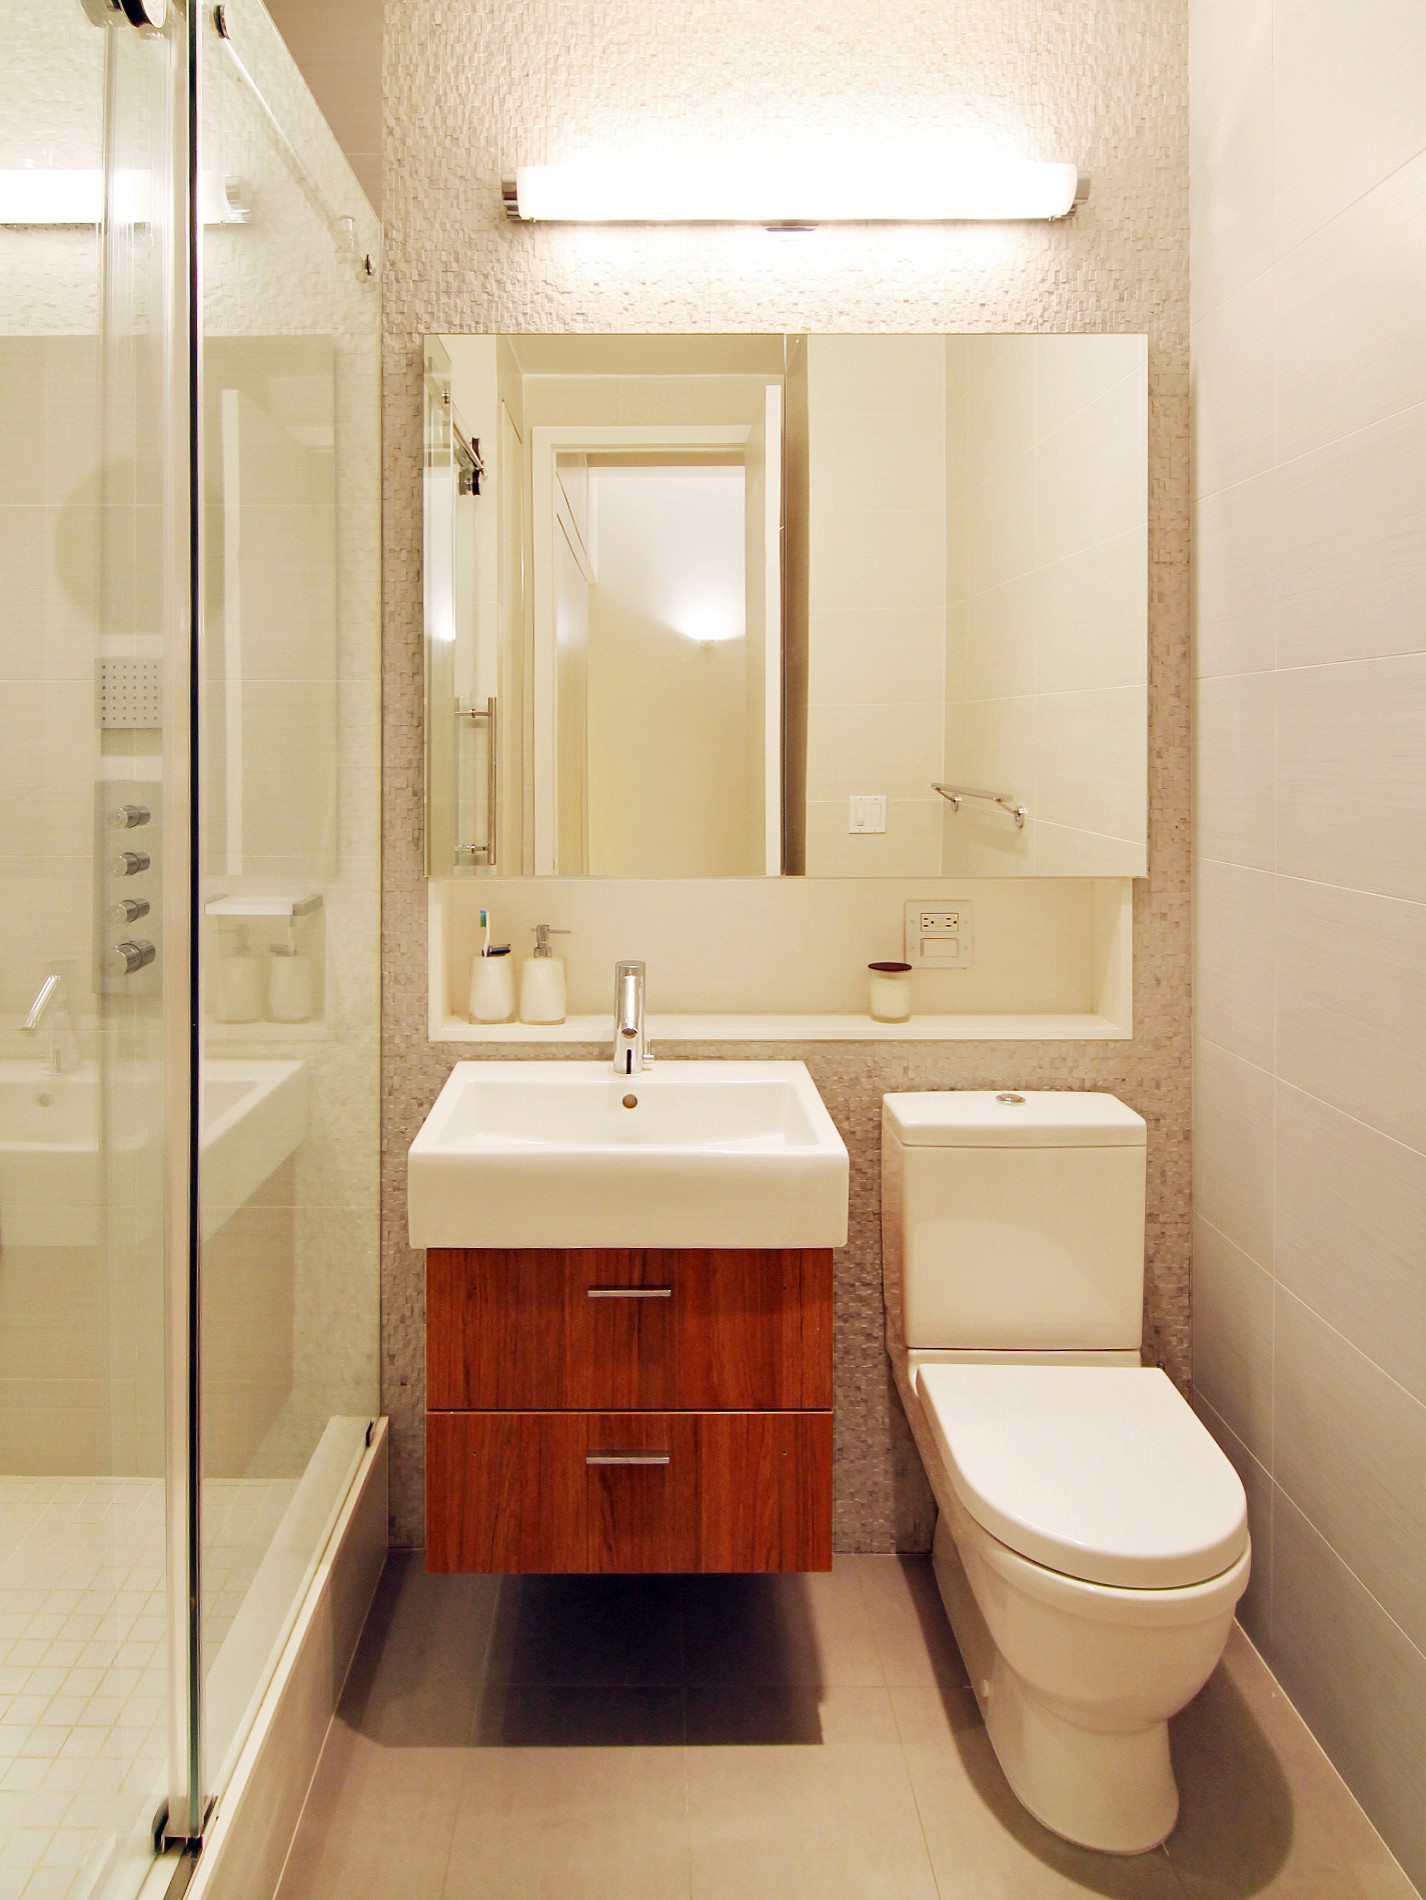 75 Beautiful Small Modern Bathroom Pictures Ideas April 2021 Houzz